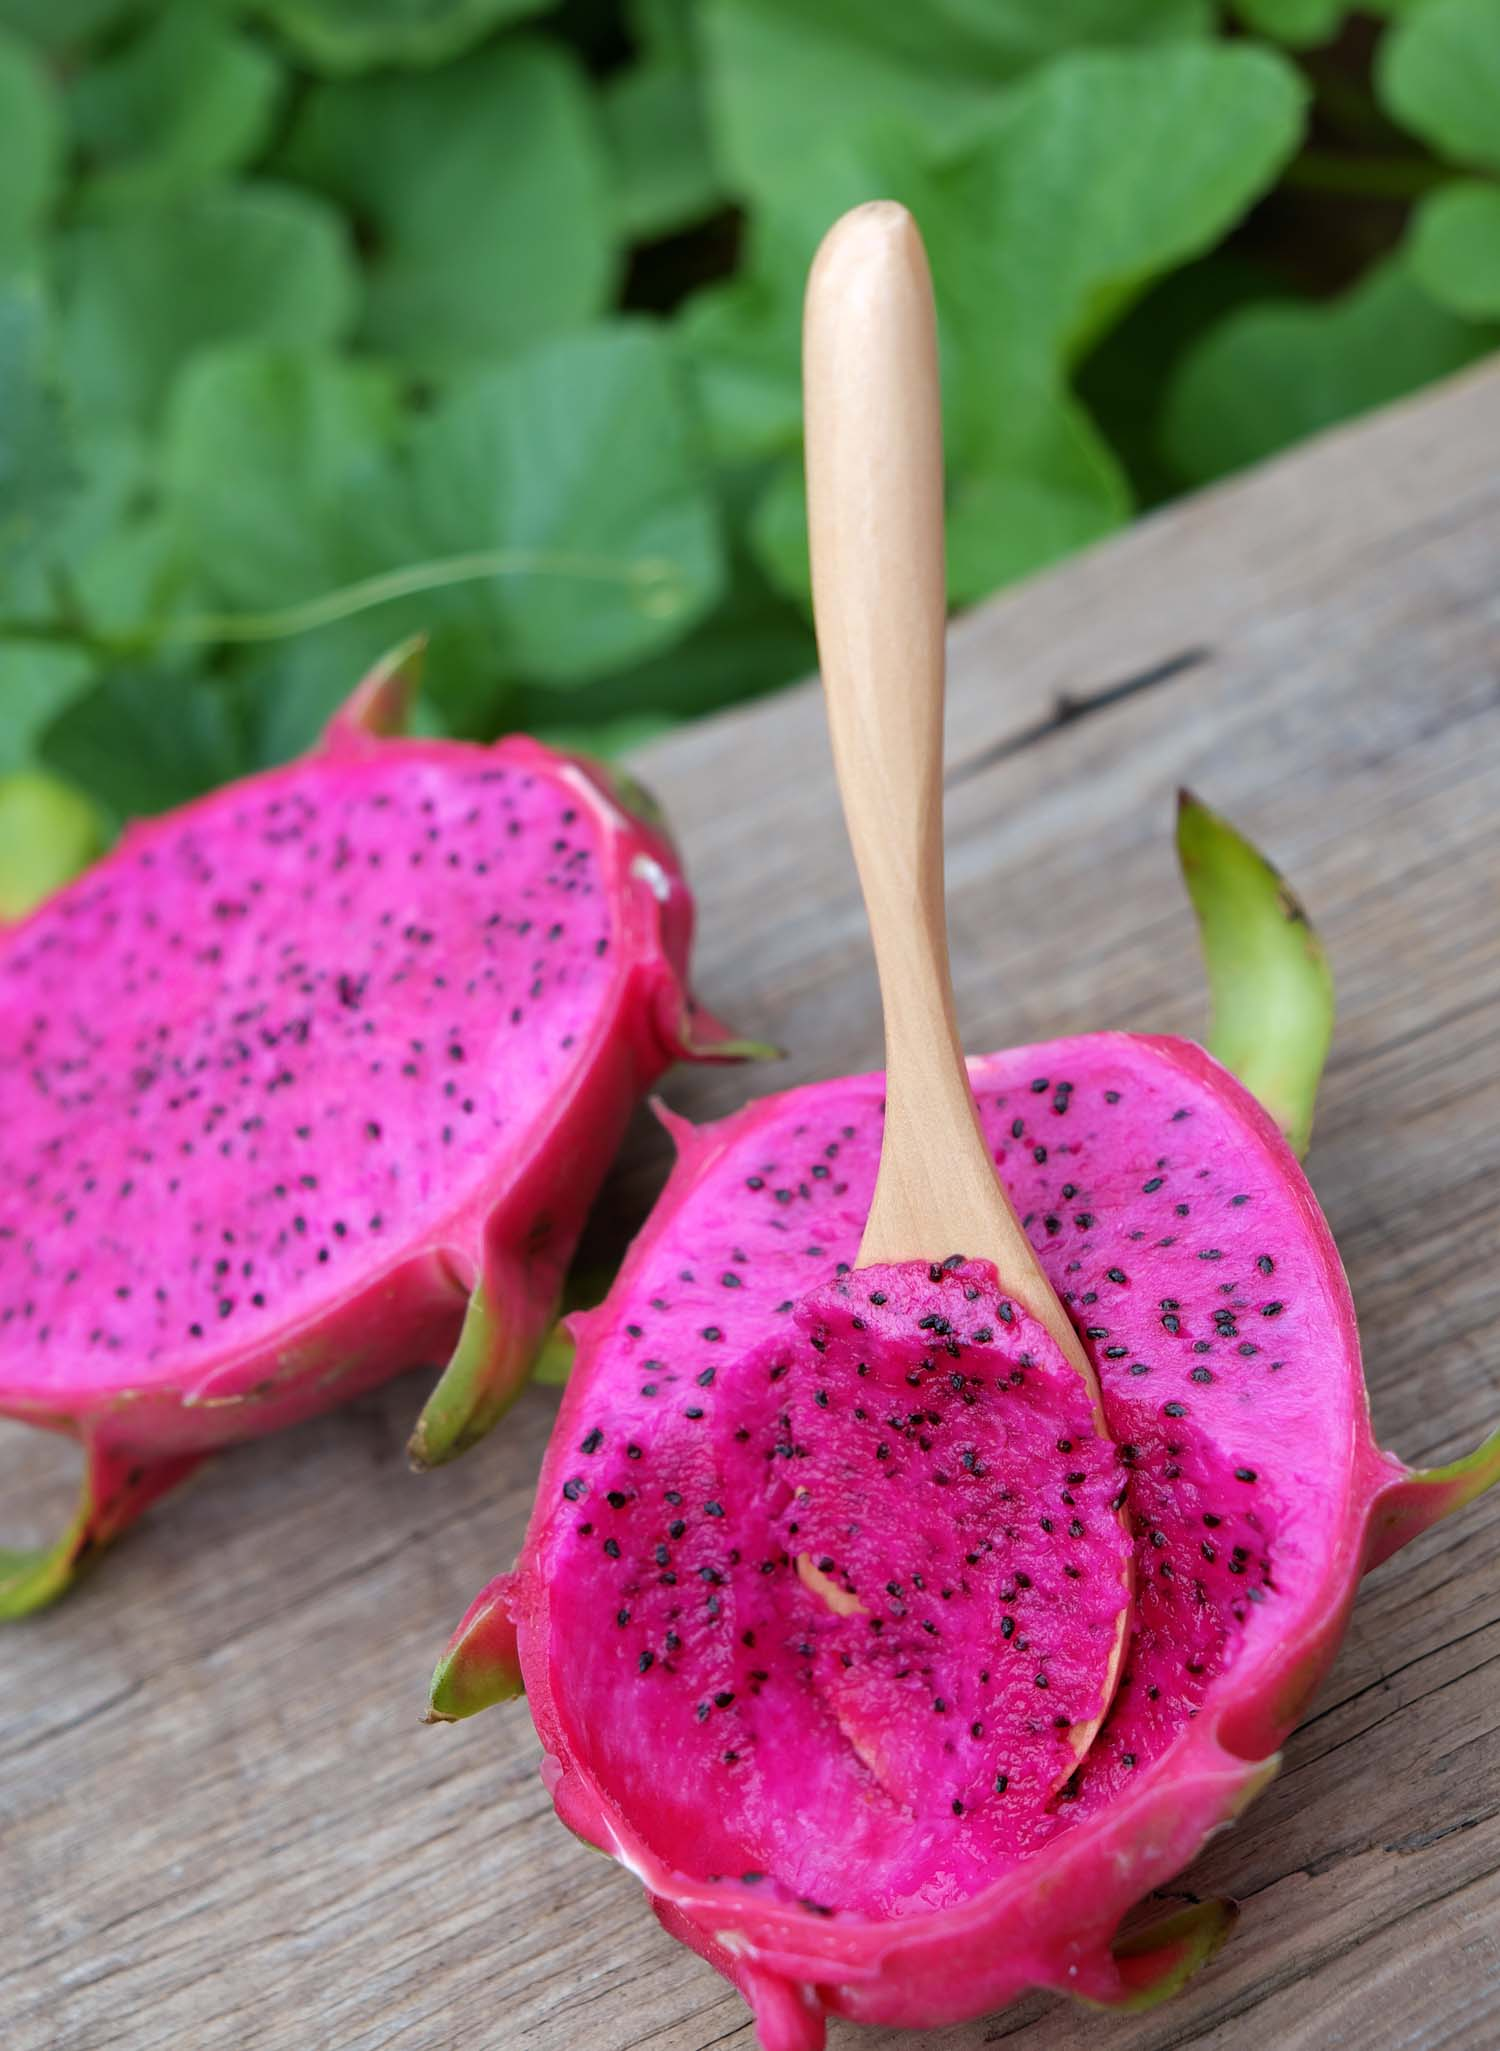 Dragon fruit a tropical Peru fruits also called pitaya agriculture product with purle pink color close up of delicious dessert at garden